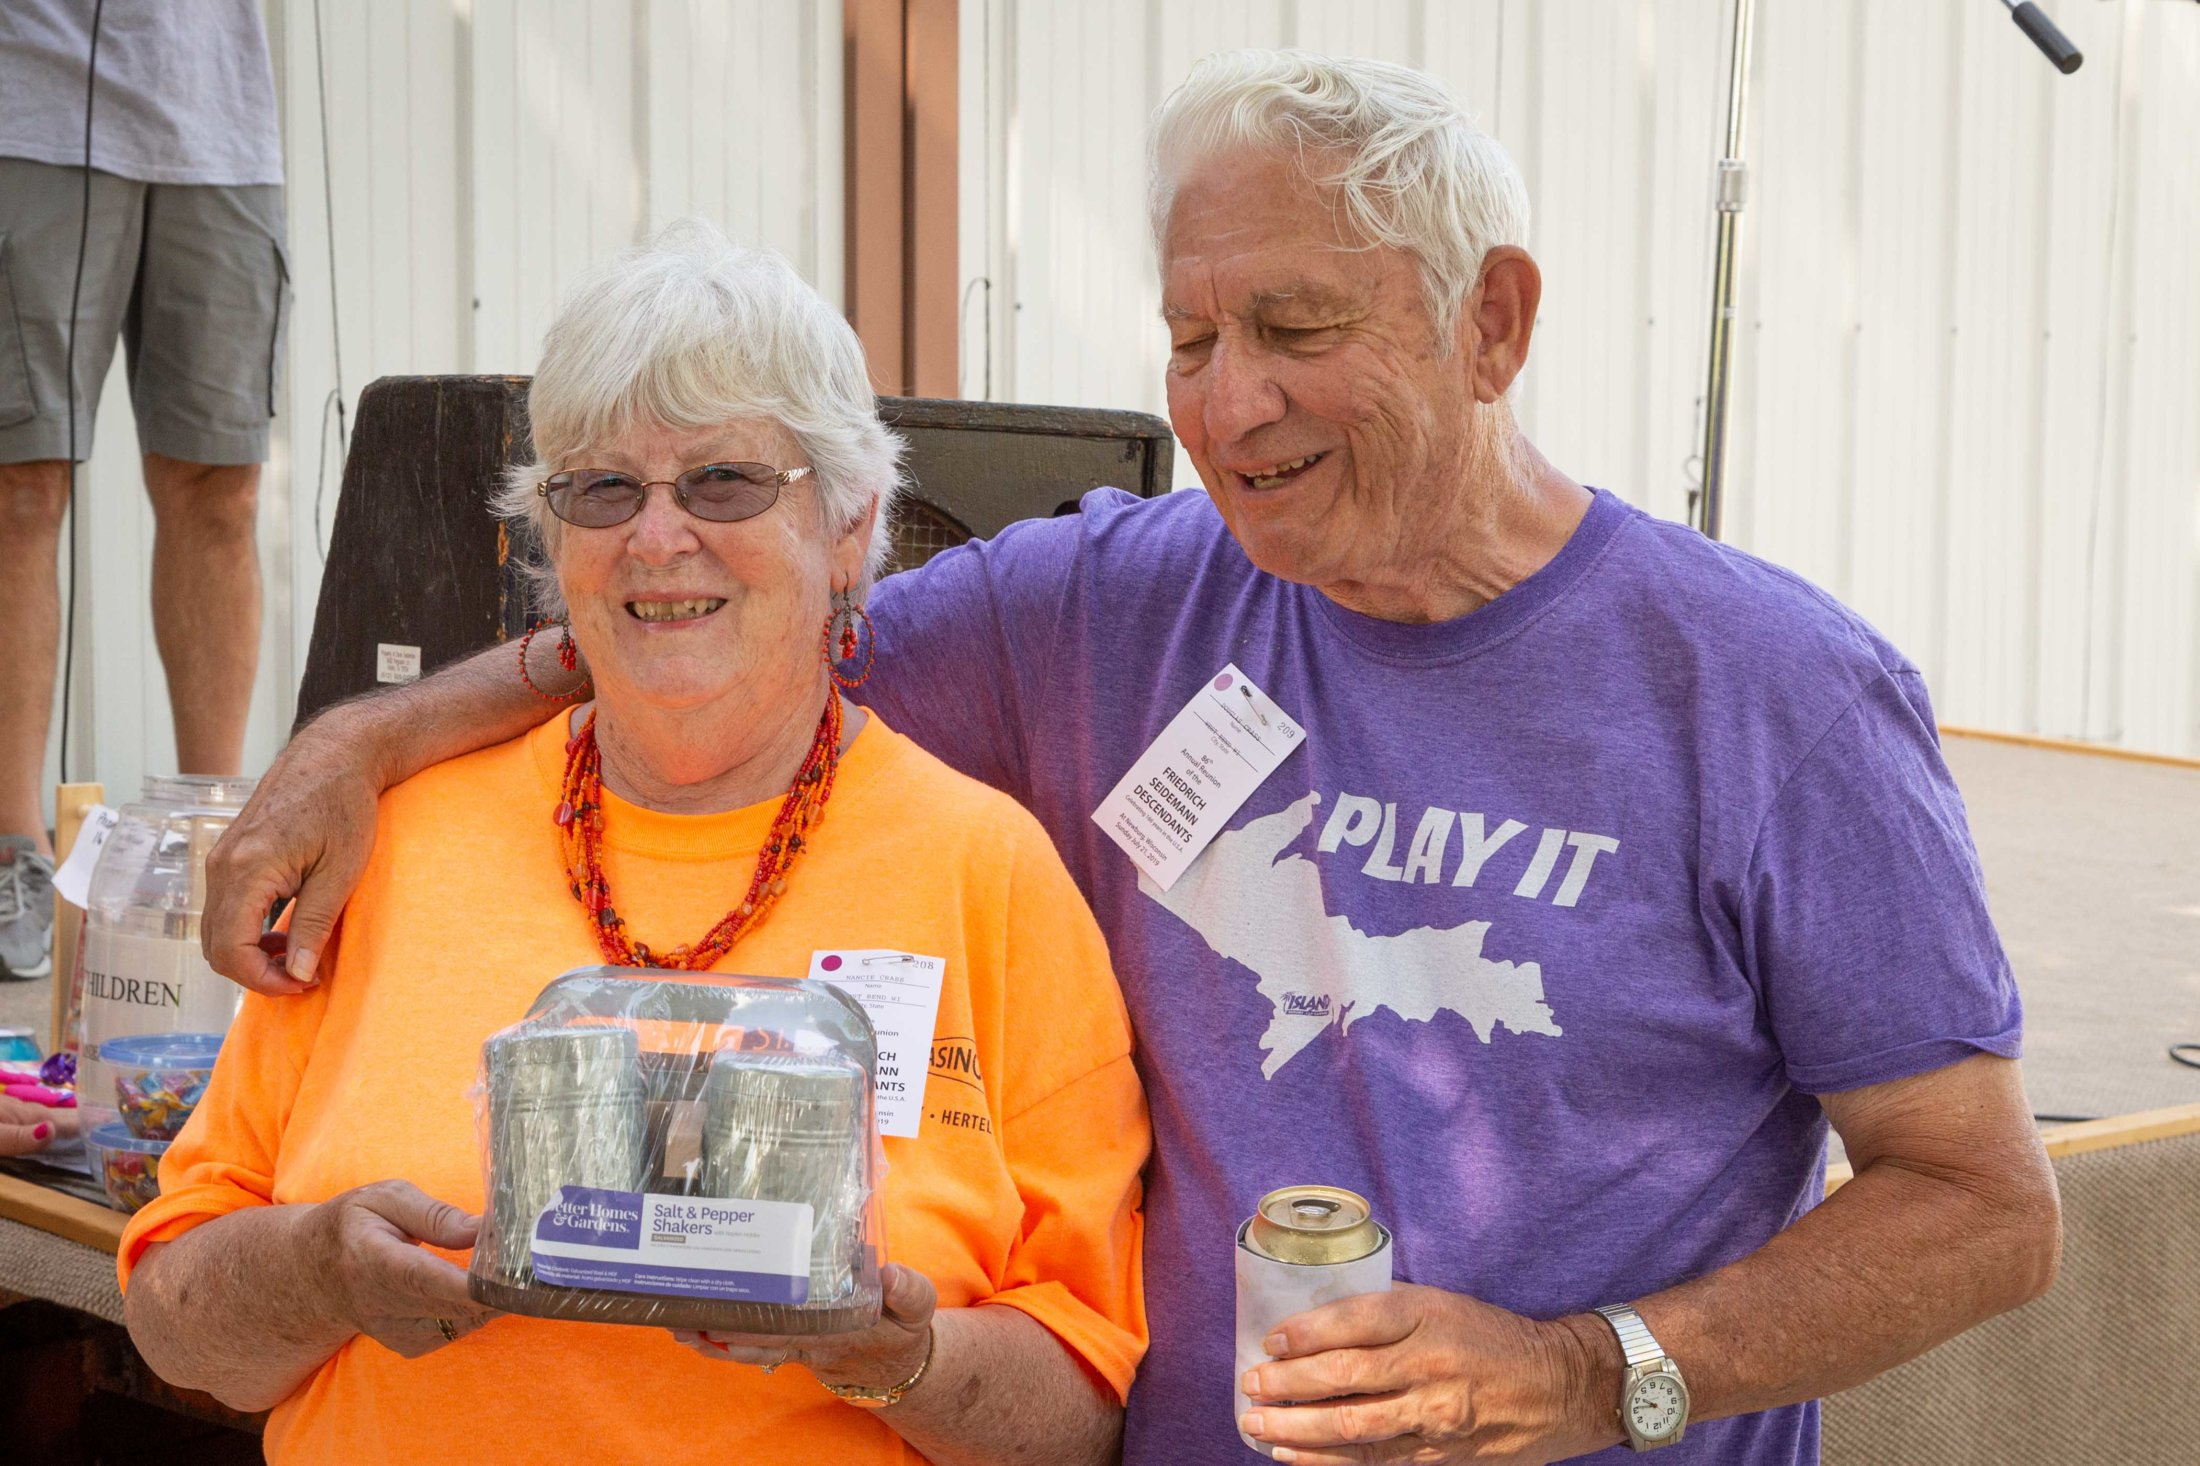 The Longest Married Award Went To Nanci & Doug For 58 Years Of Wedded Bliss.